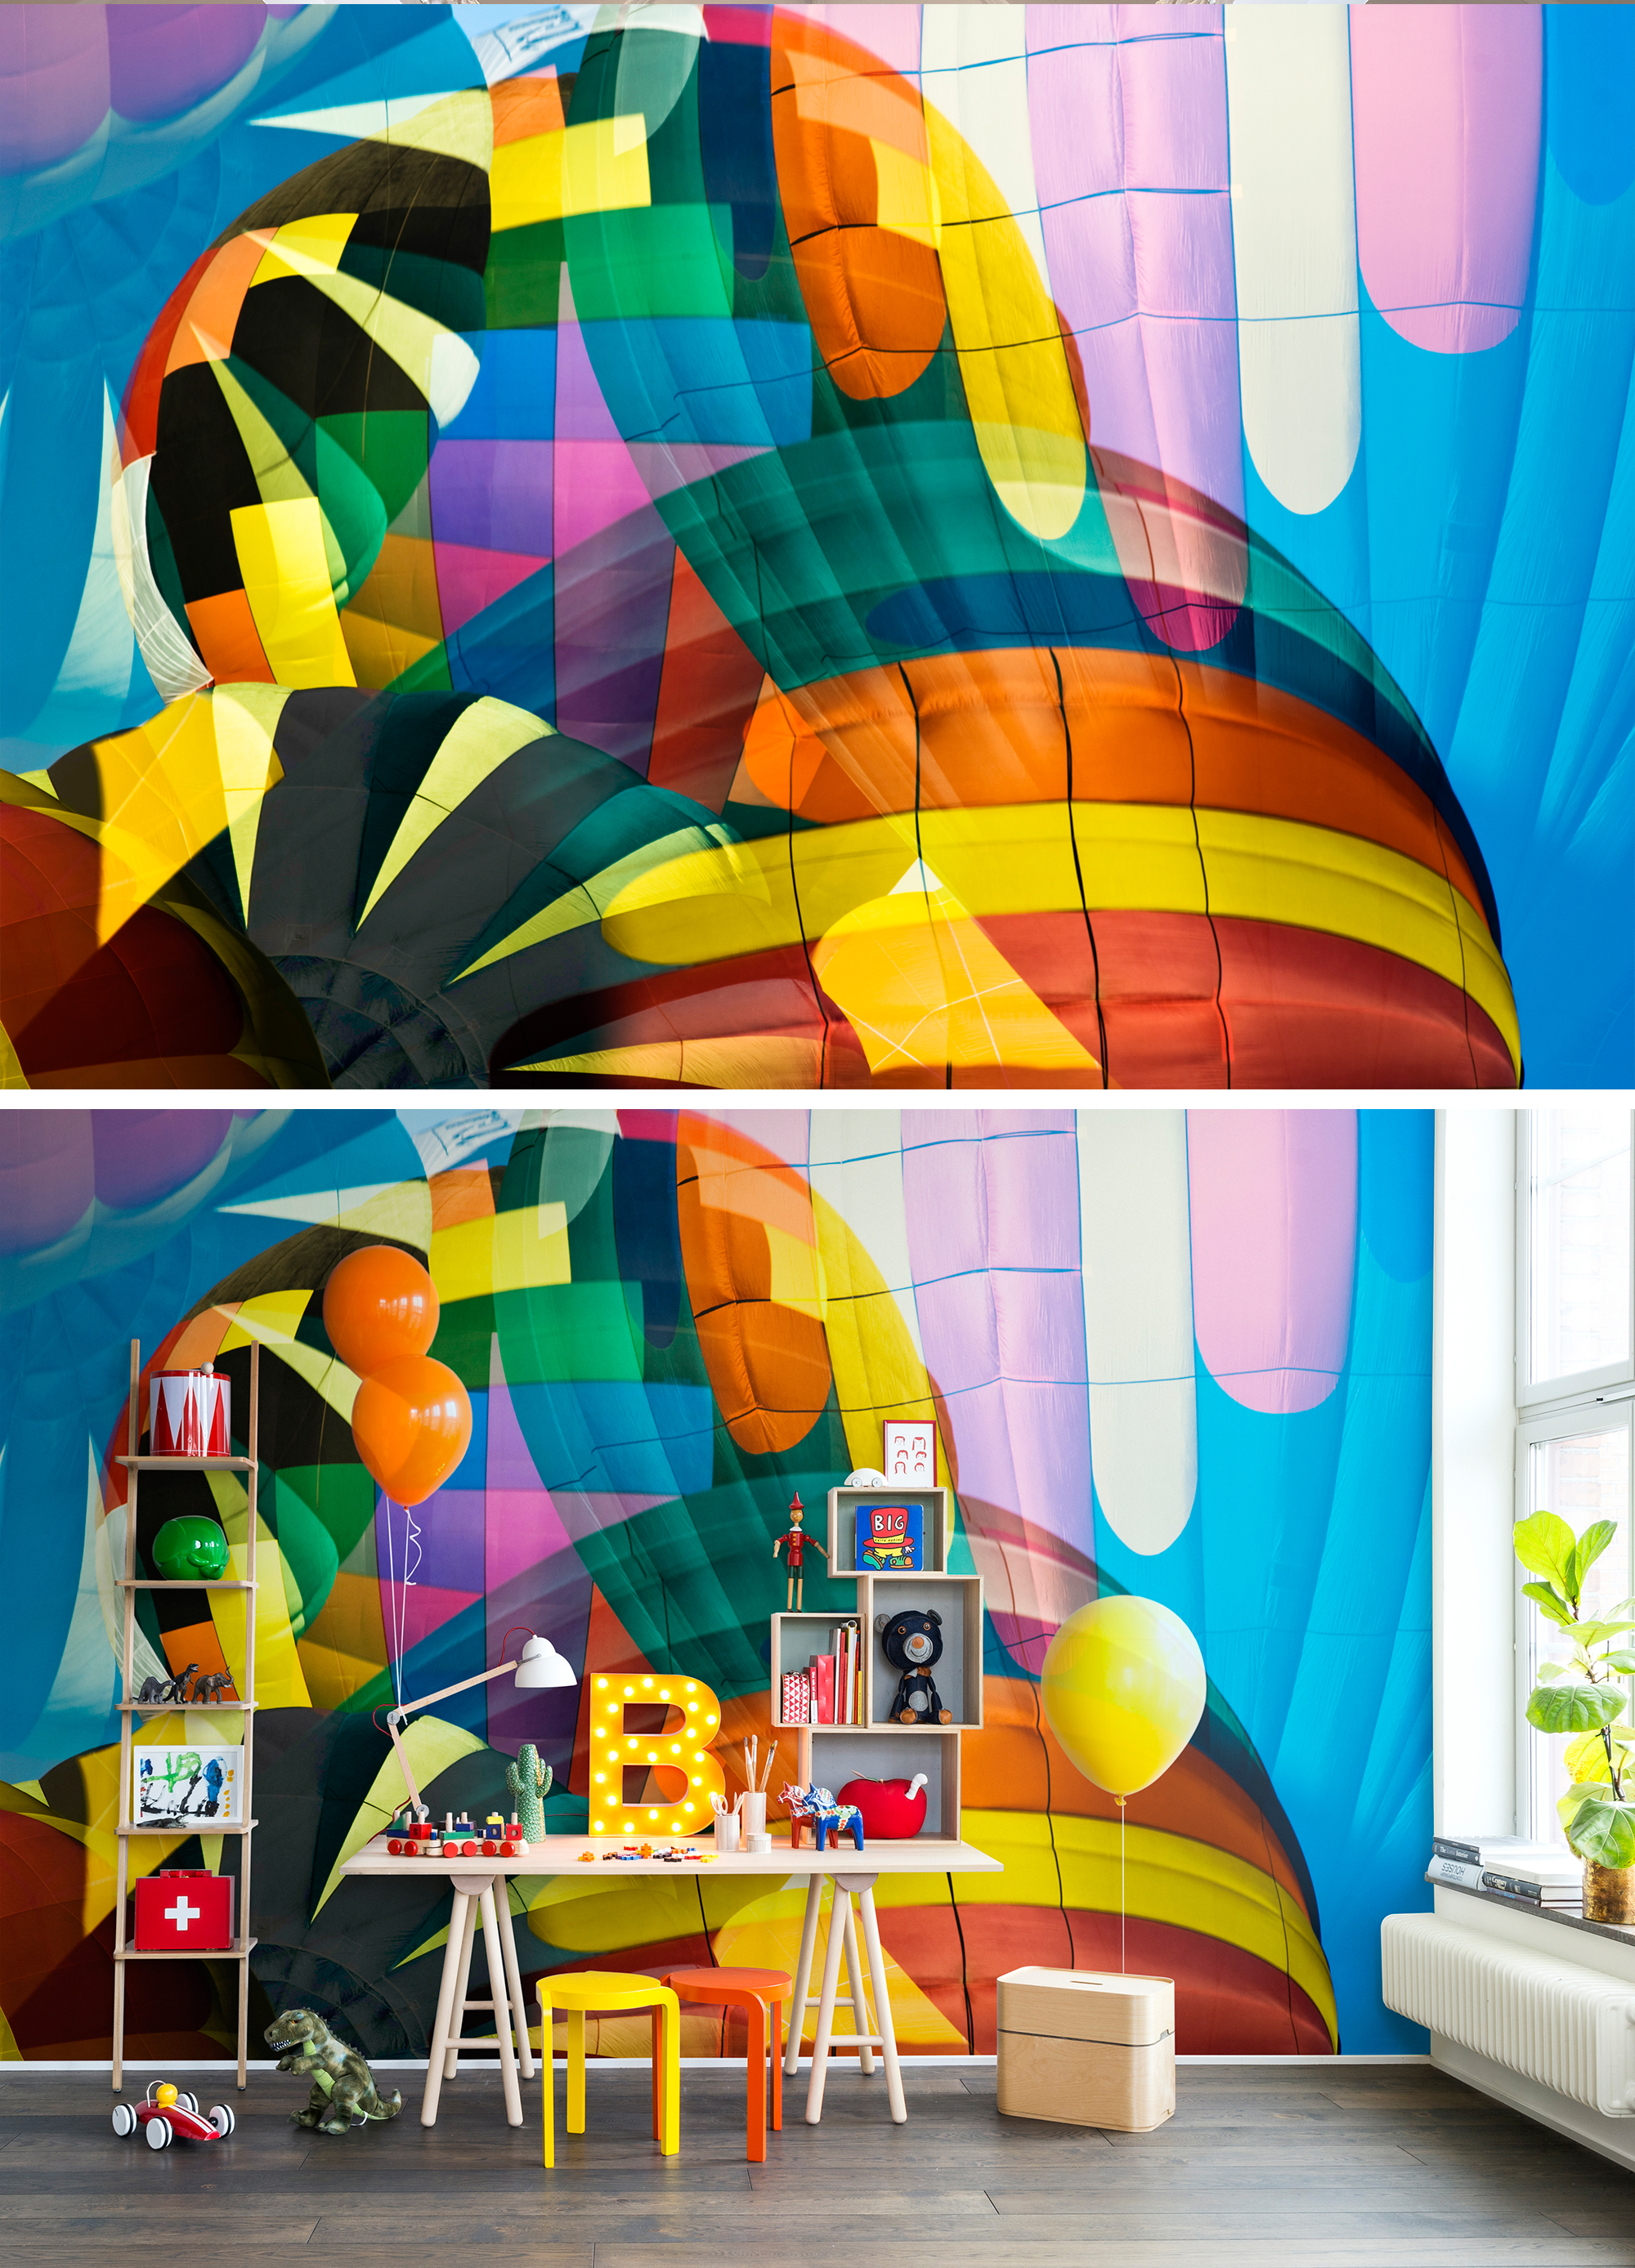 WALL-MURAL-COLOURFUL-PLAYFUL-HOT-AIR-BALLONS-PHOTO-AIR-ADVENTURE-wallpaper-wp44012611